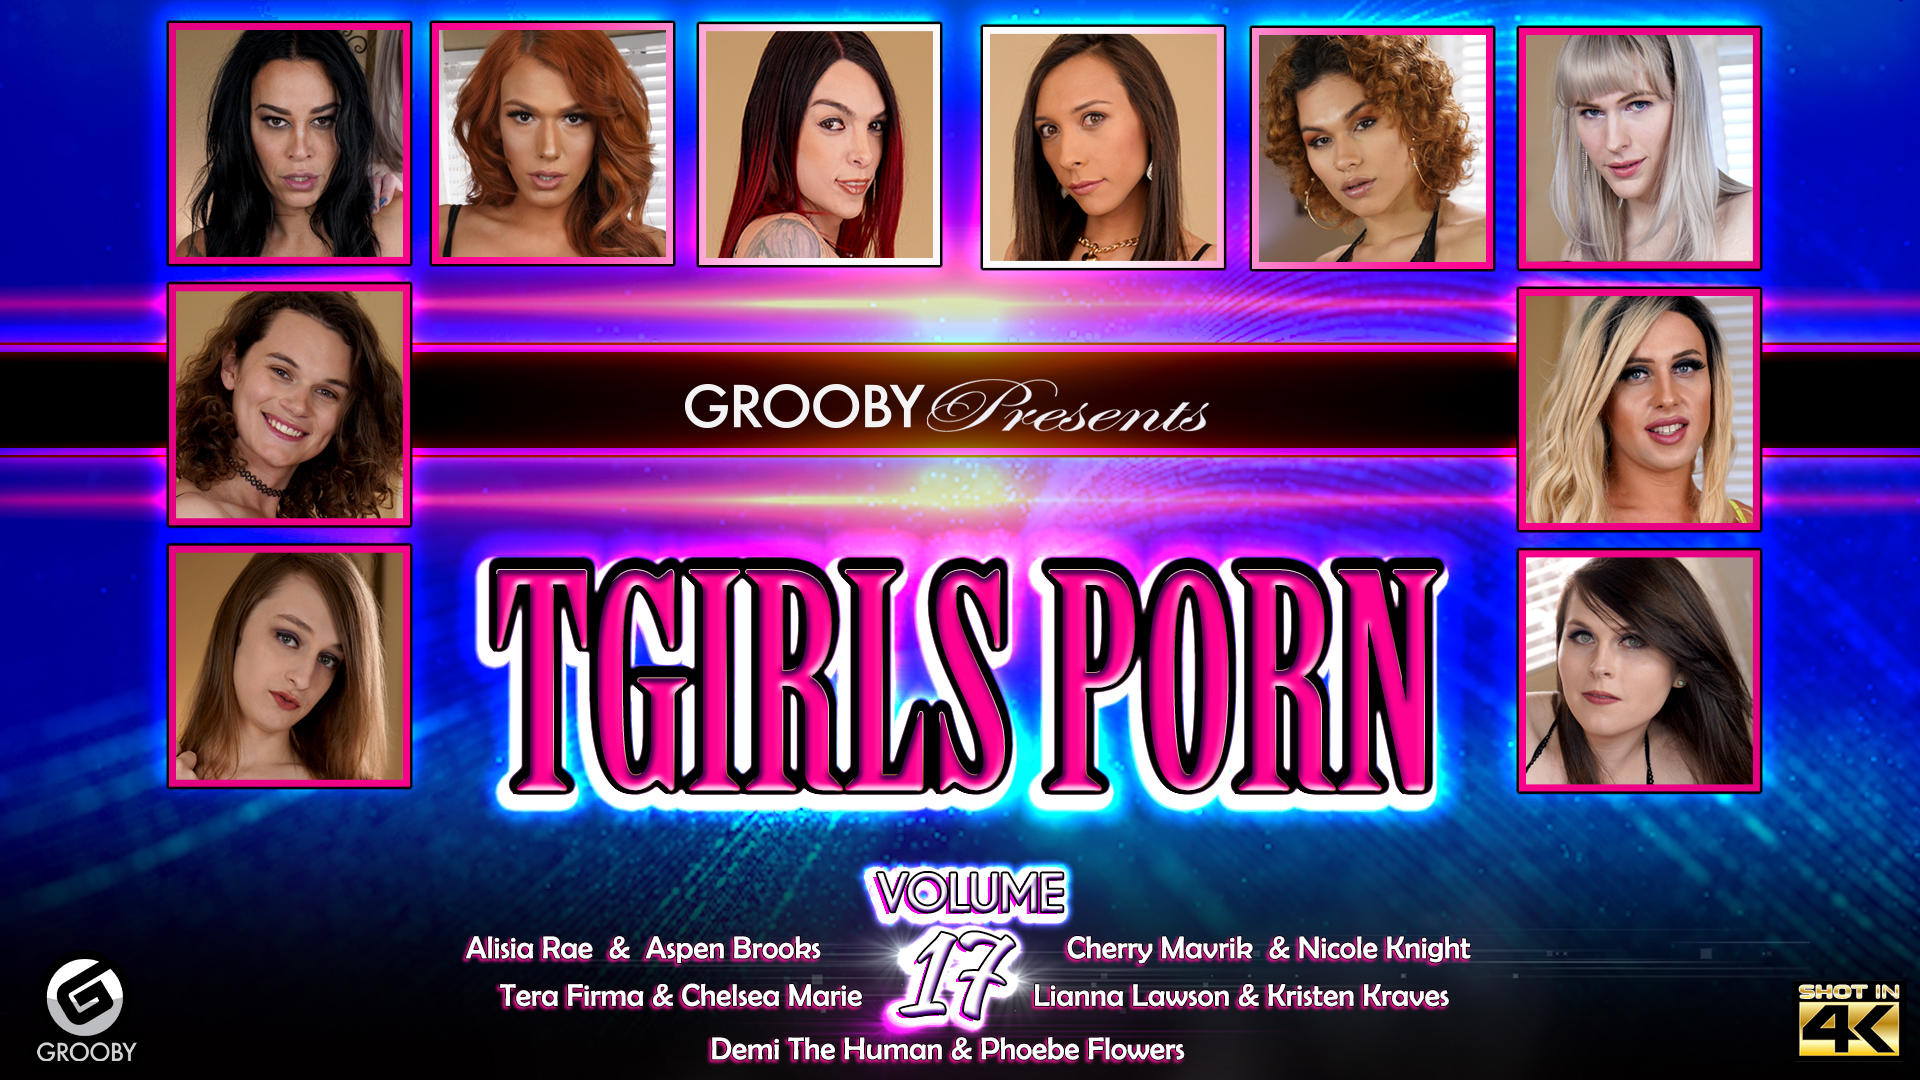 Tgirls Porn Volume 17 - DVD Trailer